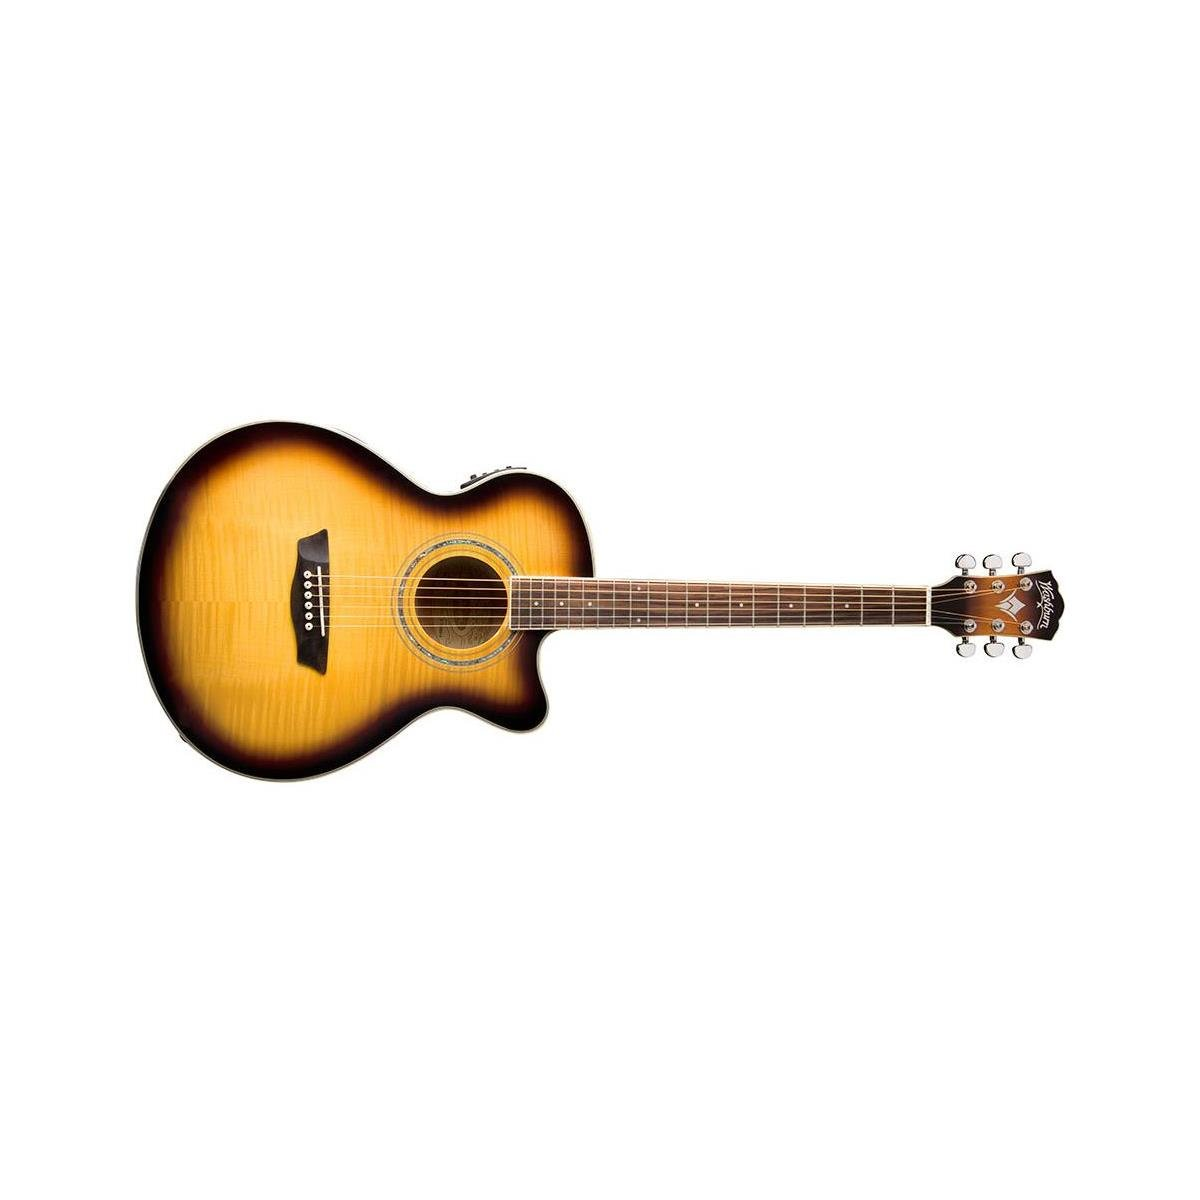 Washburn Festival Series EA15ATB Mini Jumbo Cutaway Acoustic Guitar with Flame Maple Top, Catalpa Back and Sides, 21 Frets, Mahogany with 2 Way Trussrod Neck, EQ4-T Preamp, Gloss, All Tobacco Burst